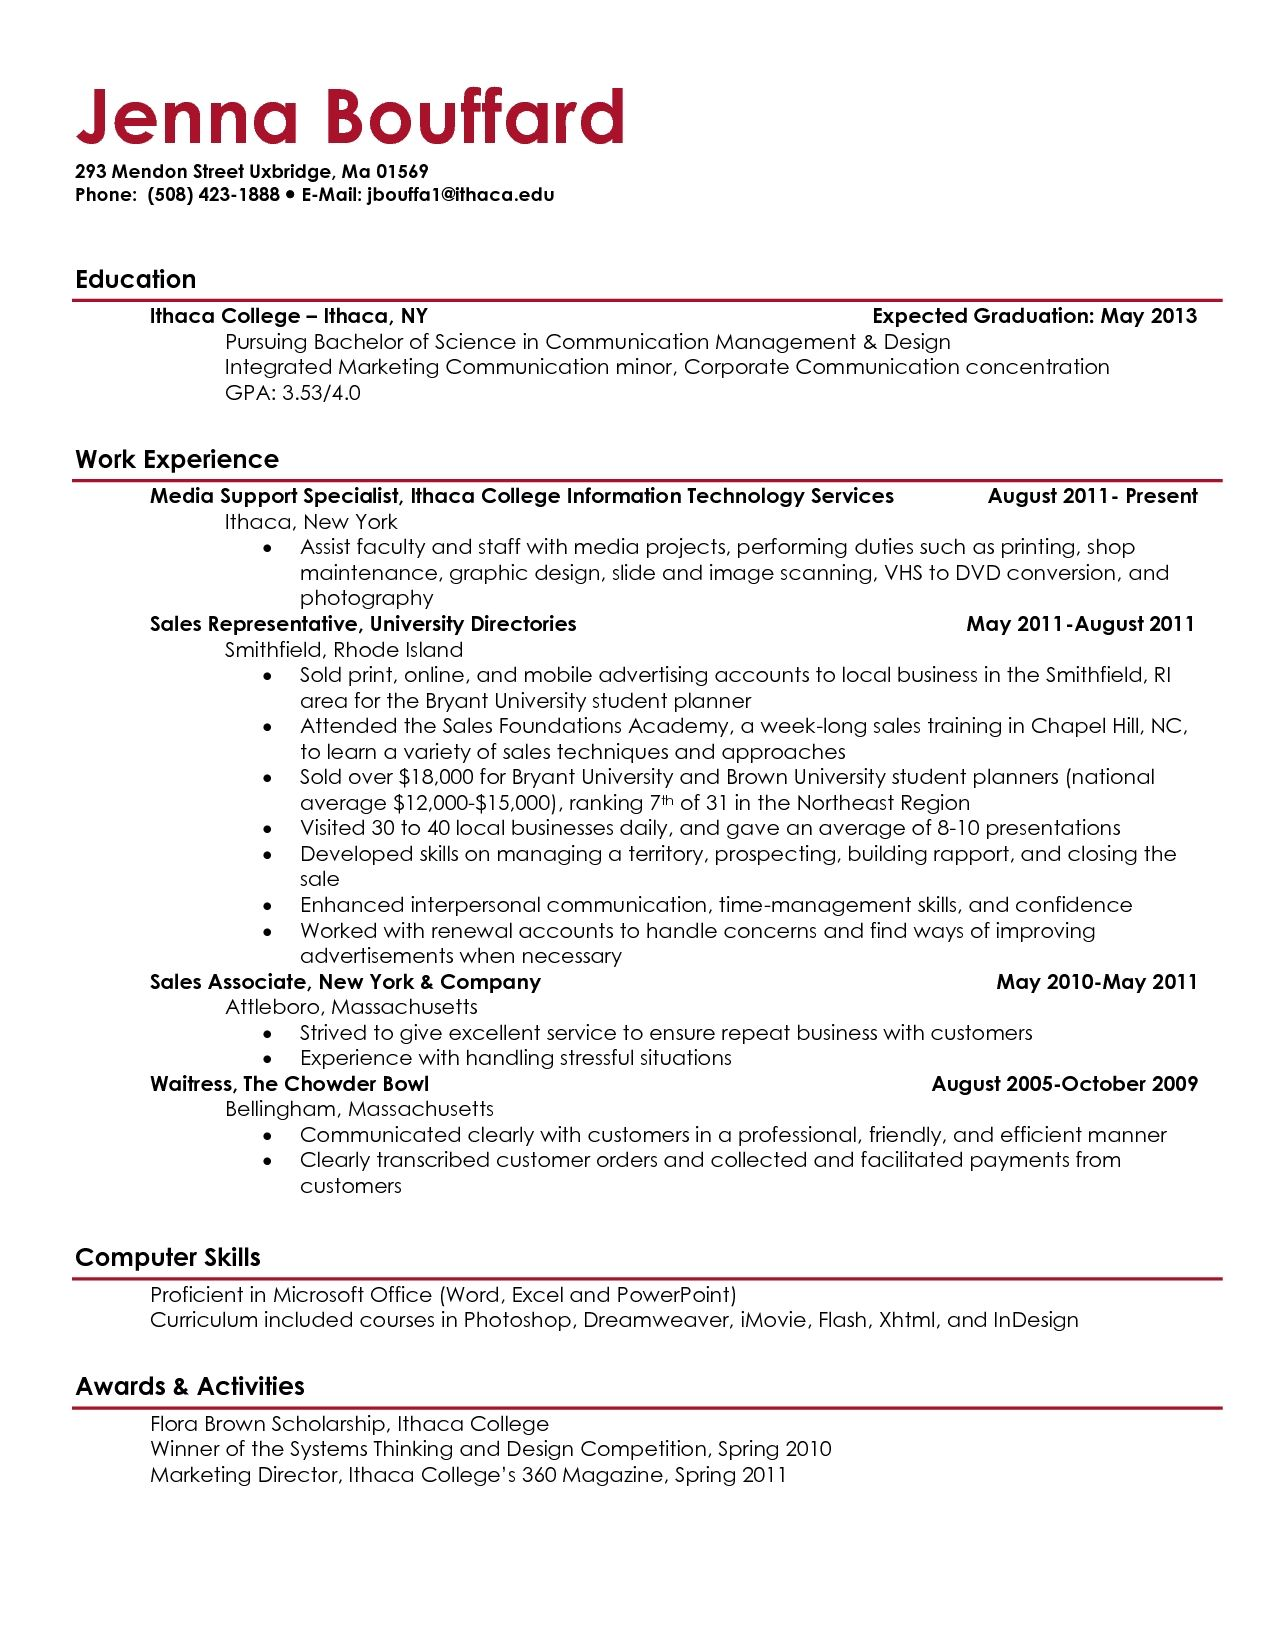 job resume examples for college students good resume examples for college students data sample resume